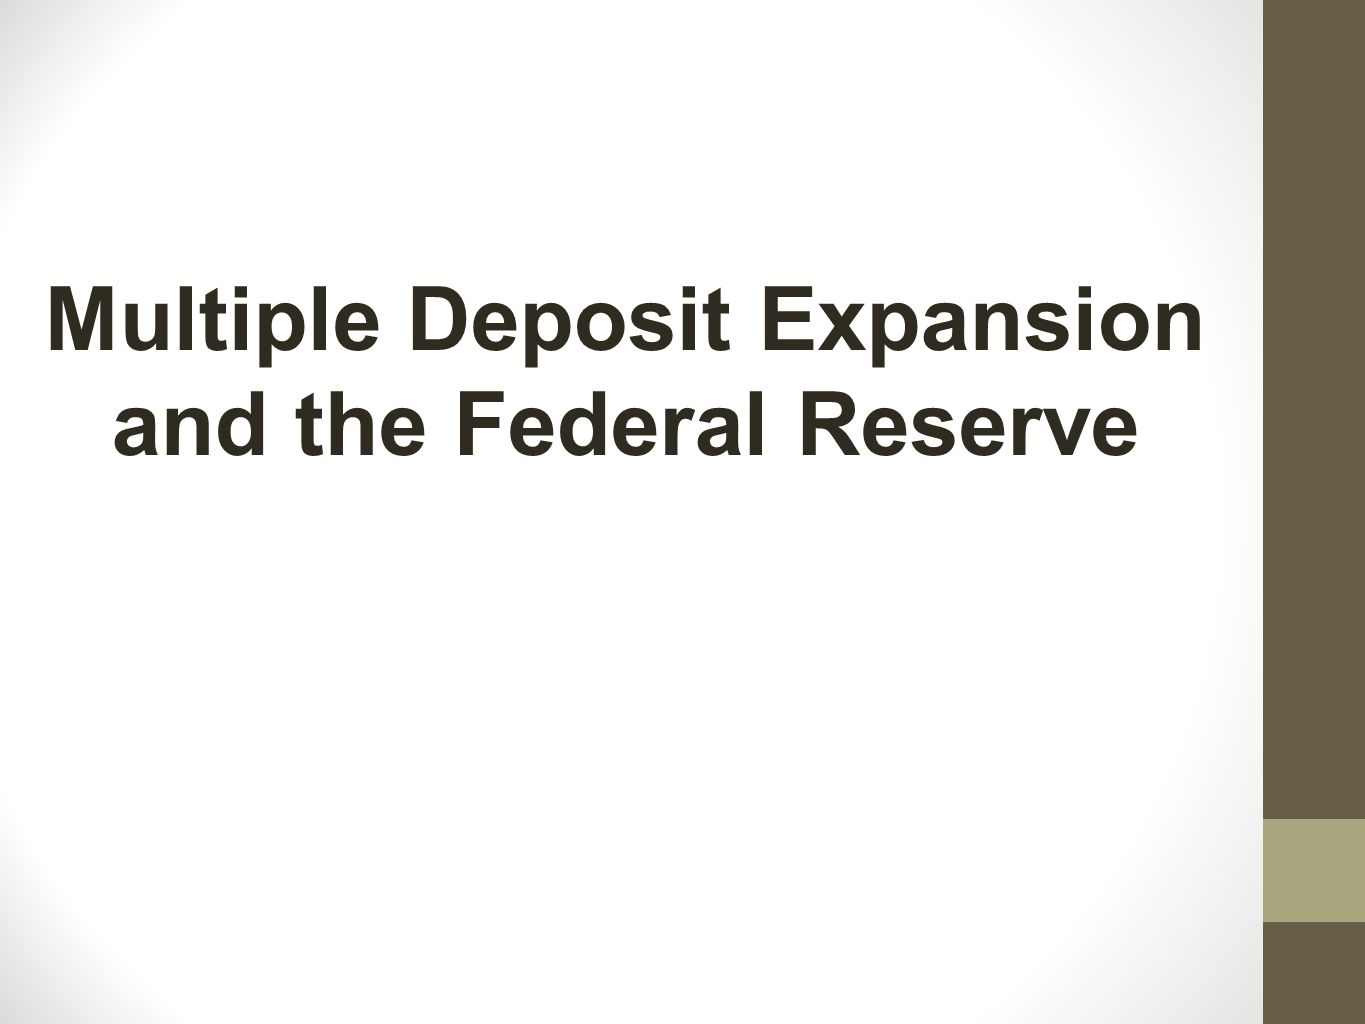 The Federal Reserve System The Federal Reserve was established in 1913 to regulate the banking system There is a Board of Governors of 7 members, appointed by the president for 14 year, staggered terms The Federal Open Market Committee includes the 7 governors, and 5 of the regional Federal Reserve Bank presidents (New York region always included) and they set policy of the buying and selling of government bonds Federal Advisory Council includes 12 important commerical bankers from each FED district who advise the Board